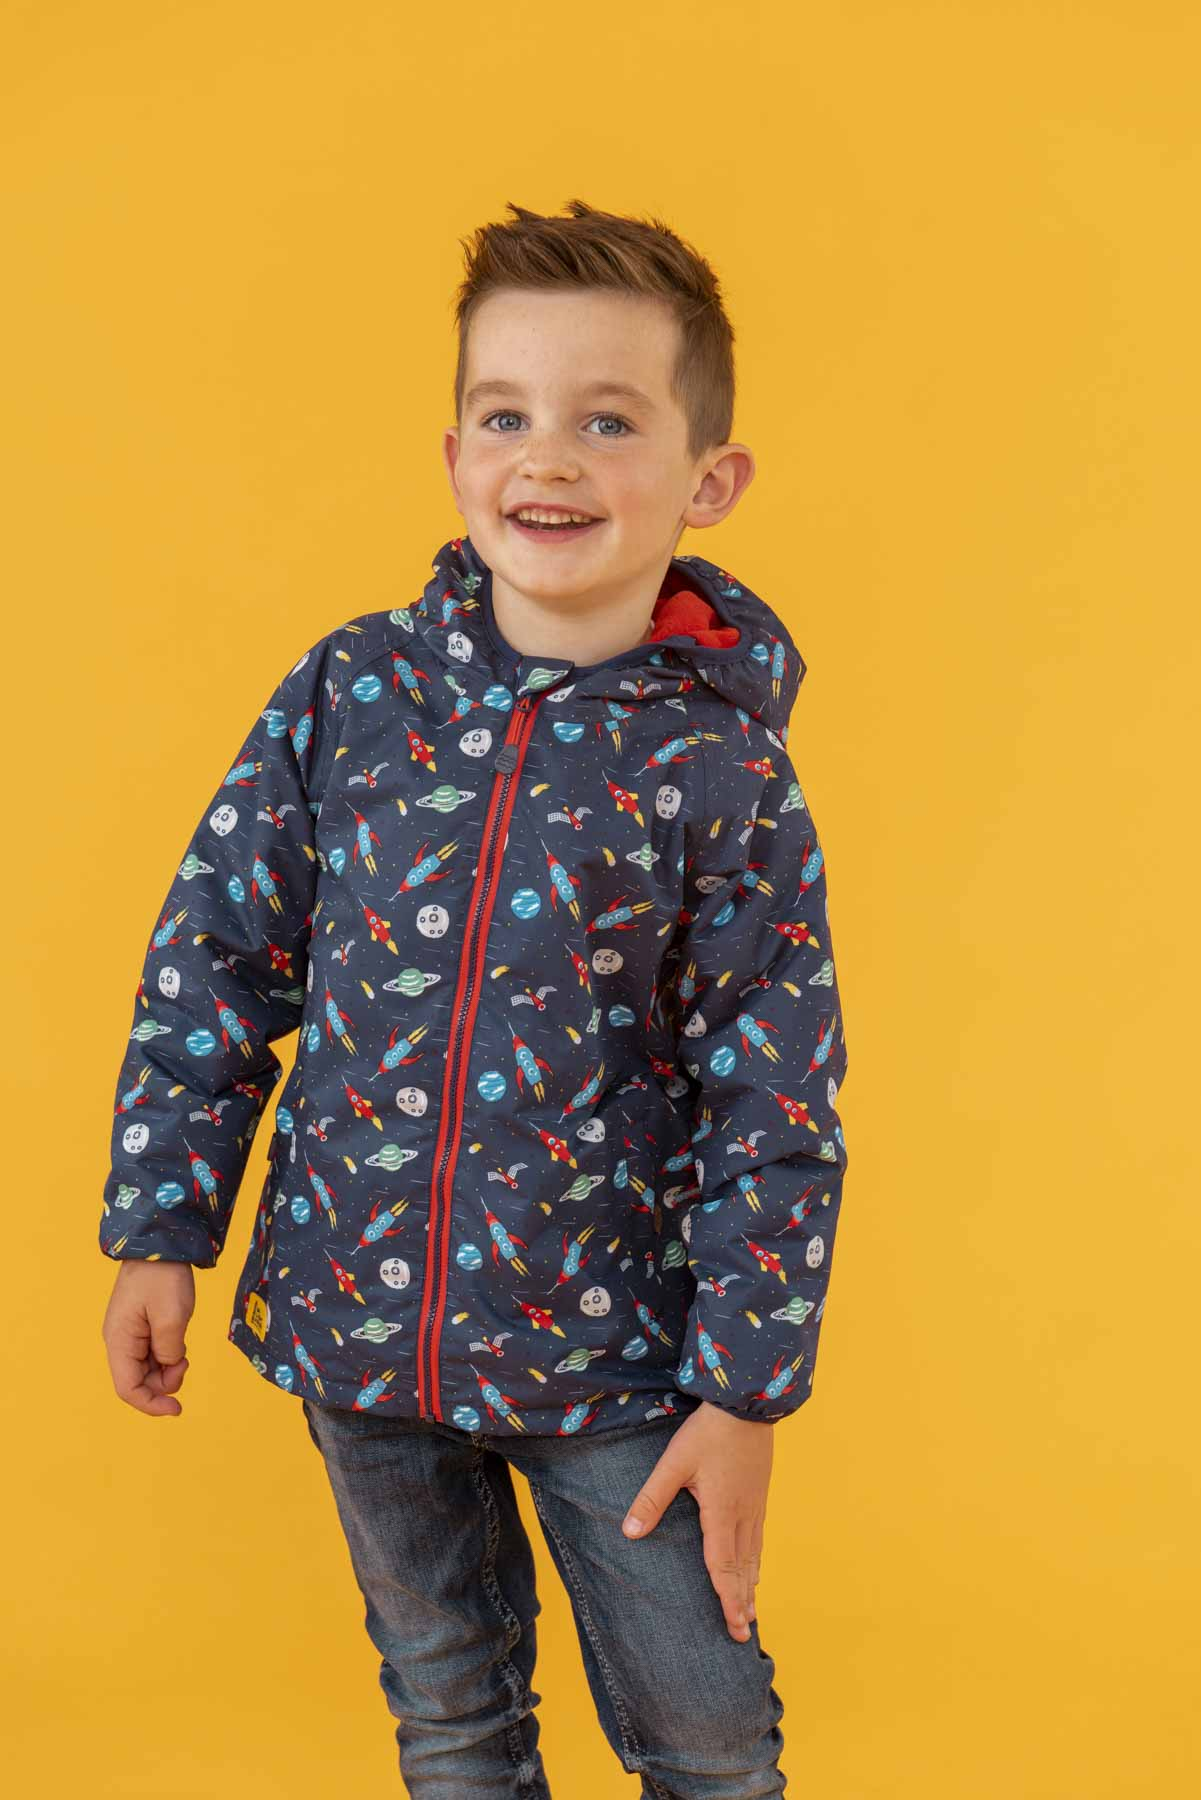 Lucas Coat - Rocket Print, Boy's Warm Raincoat | Lighthouse